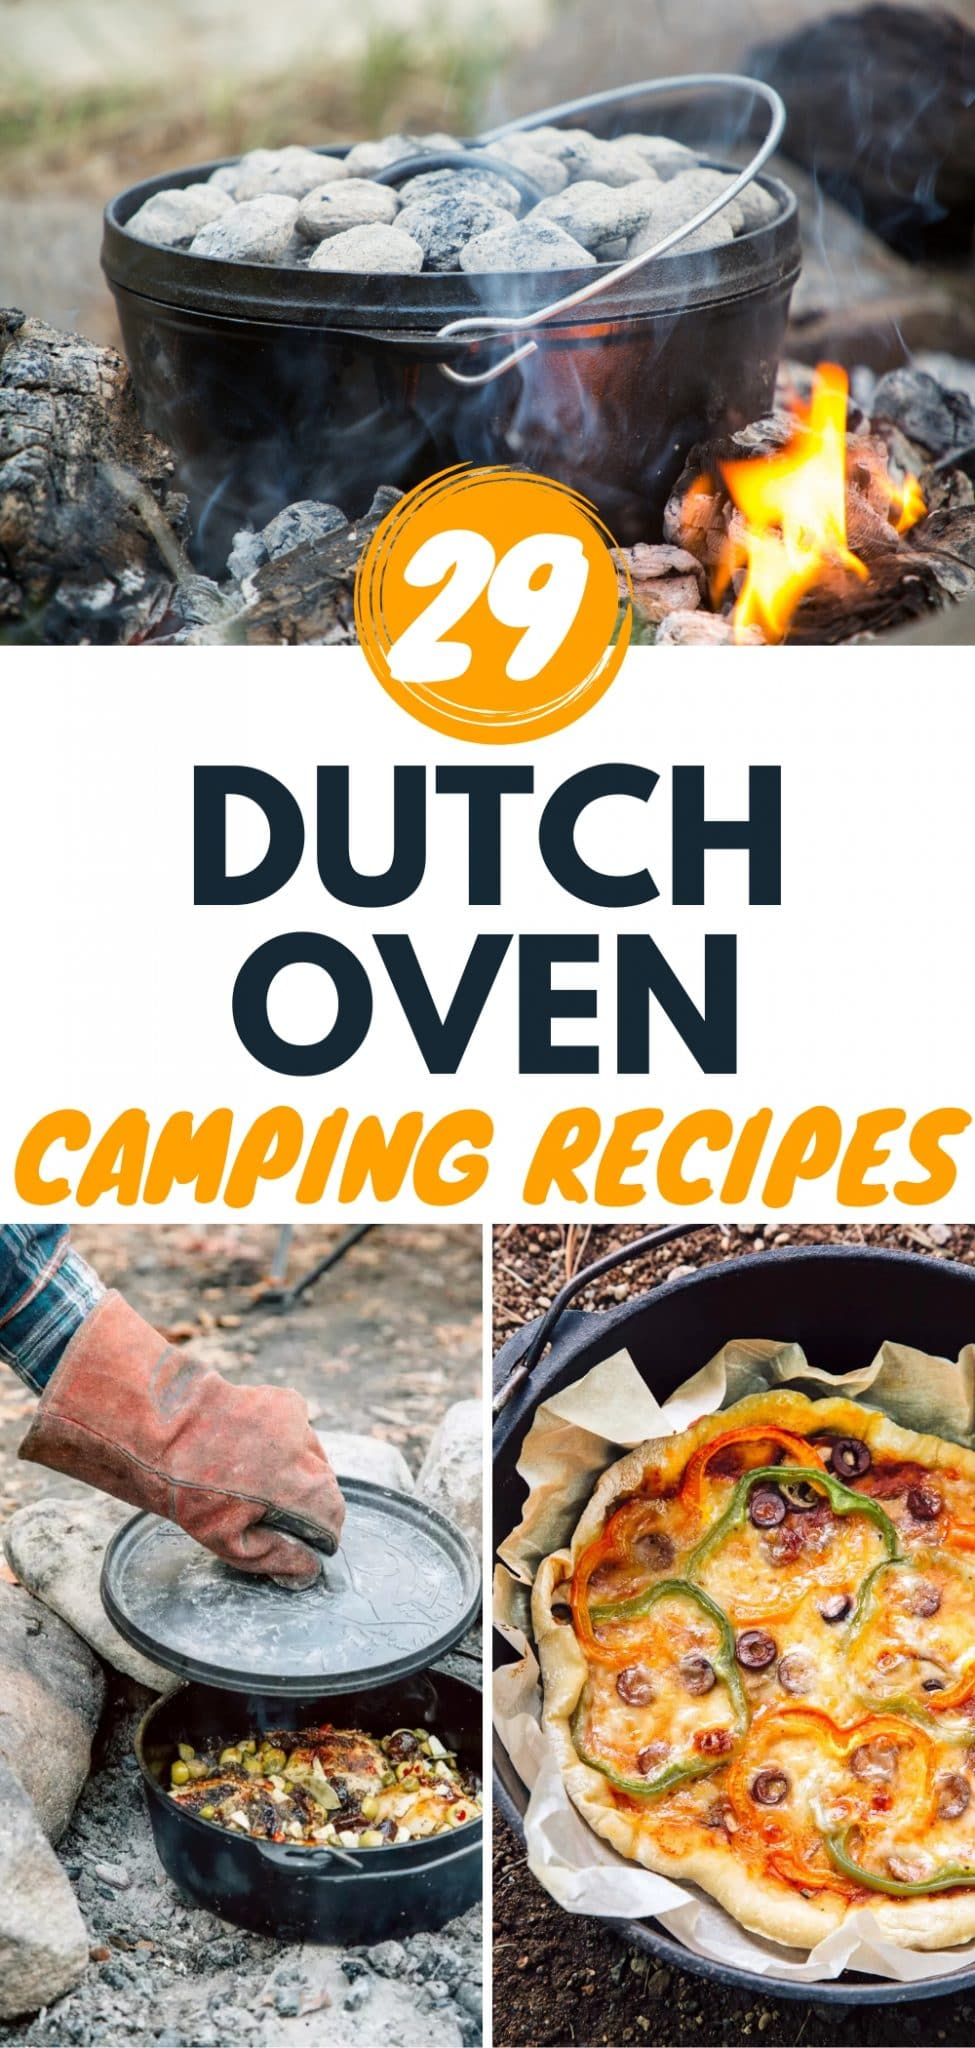 We've gathered the best dutch oven recipes for camping in this post! A Dutch oven is one of the most versatile pieces of camp cooking equipment you can own. Sauté, steam, simmer, fry, and bake – if you can imagine it, you can make it in a Dutch oven.  via @freshoffthegrid